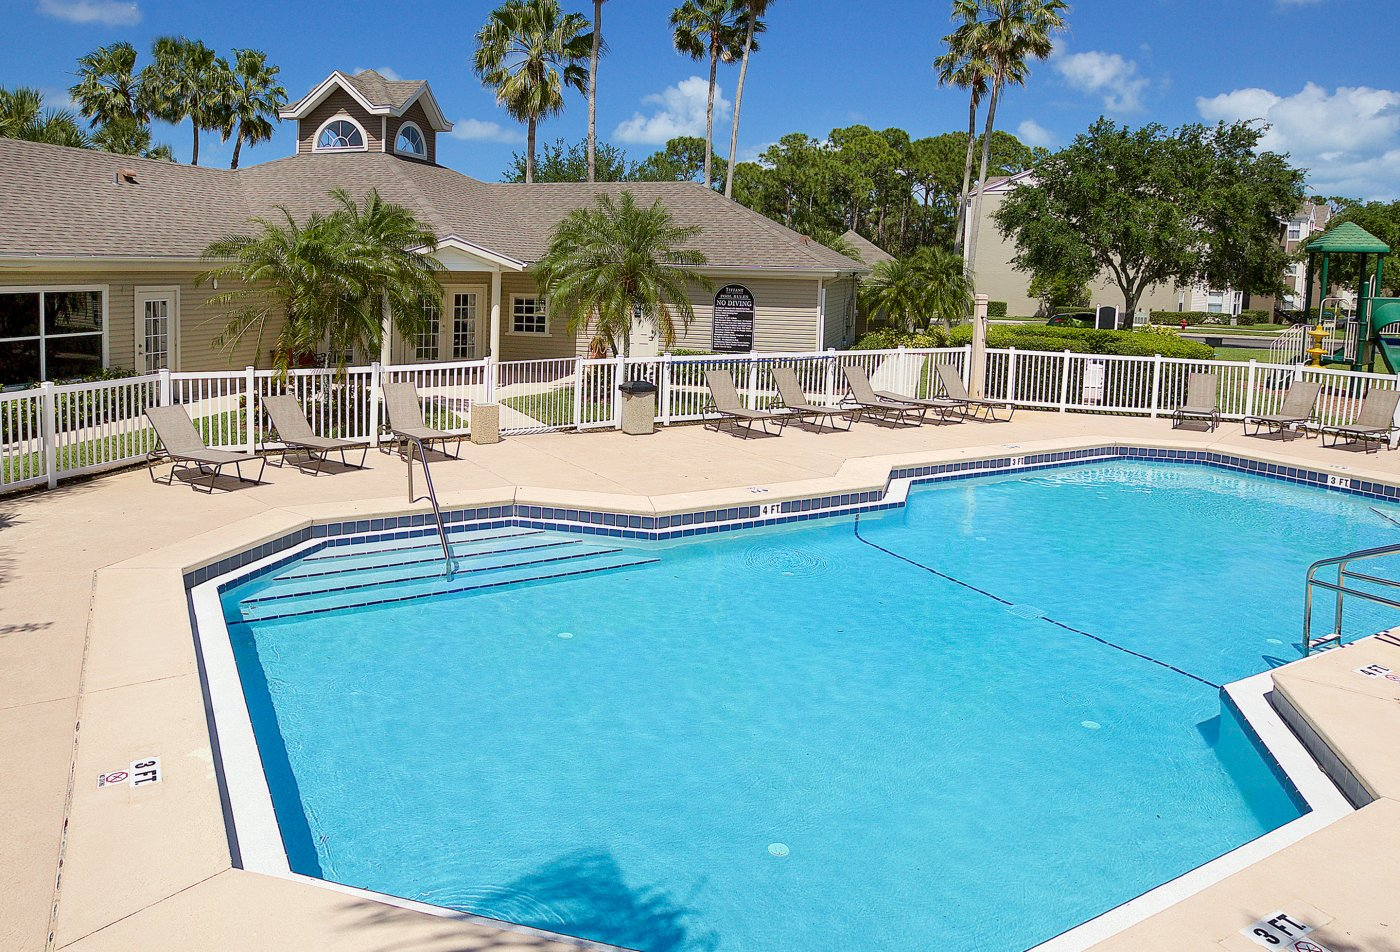 Port St. Lucie Florida Apartments for rent